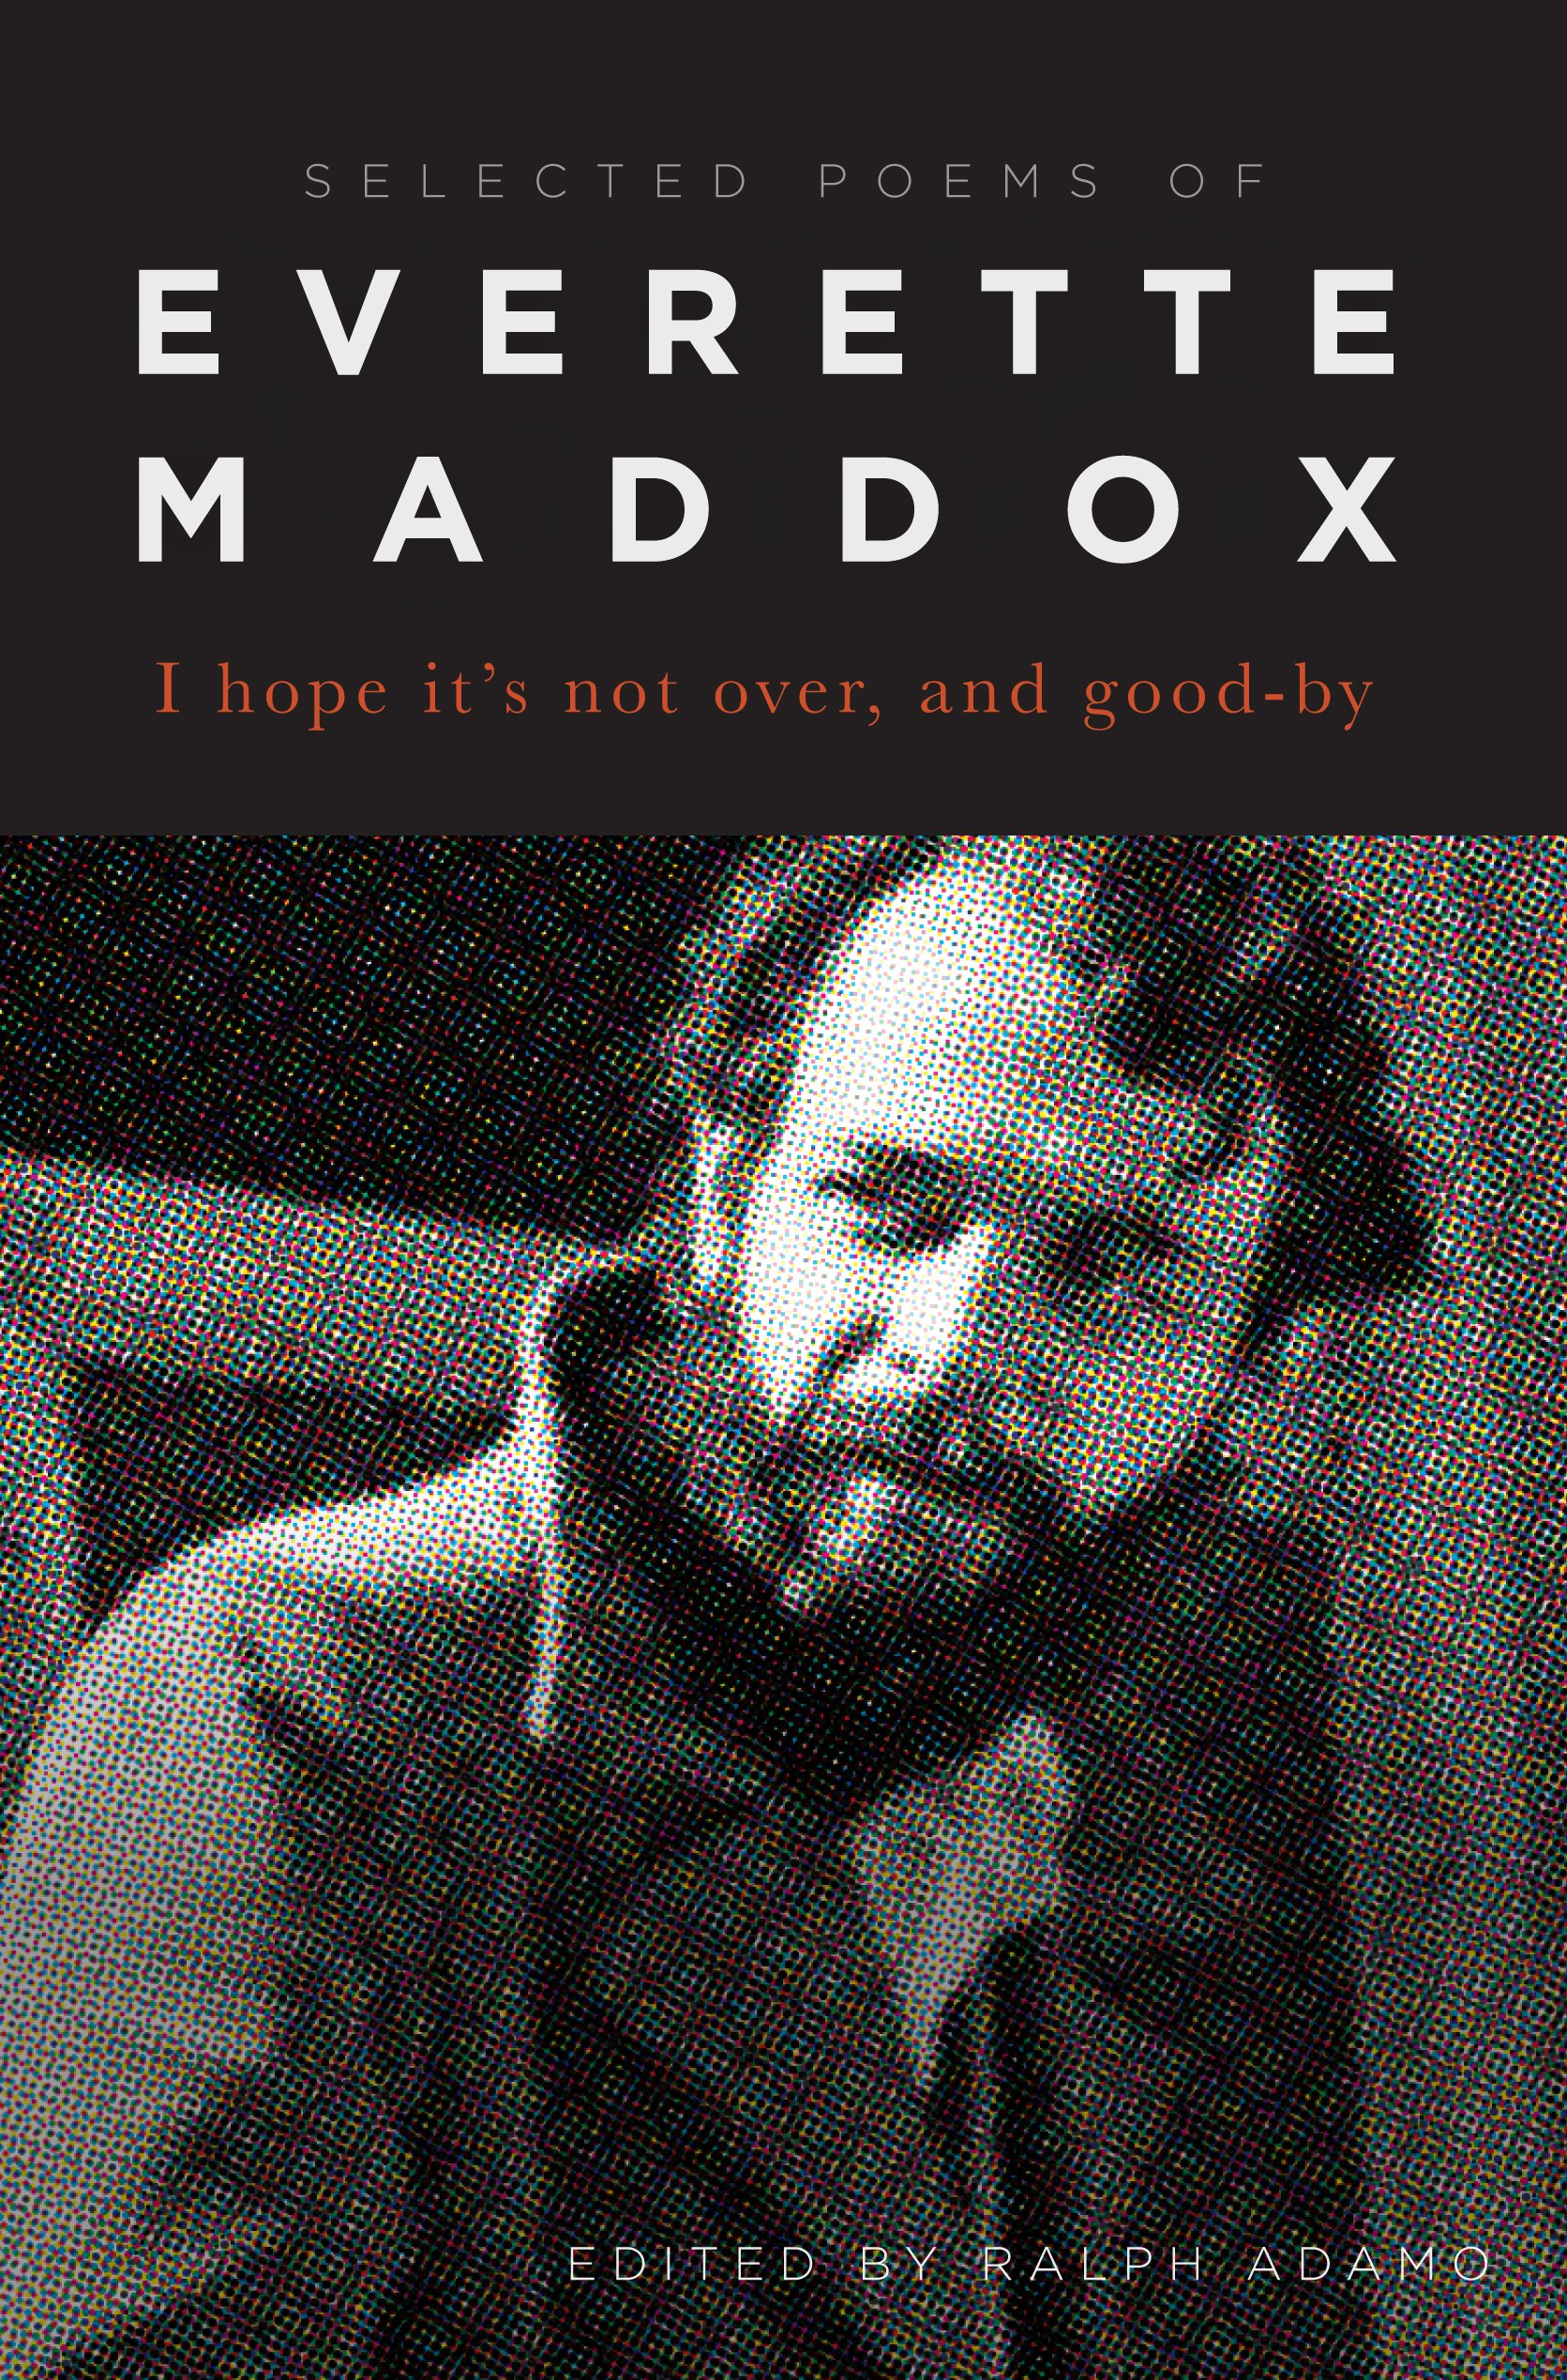 Download I hope it's not over, and good-by.: Selected Poems of Everette Maddox PDF